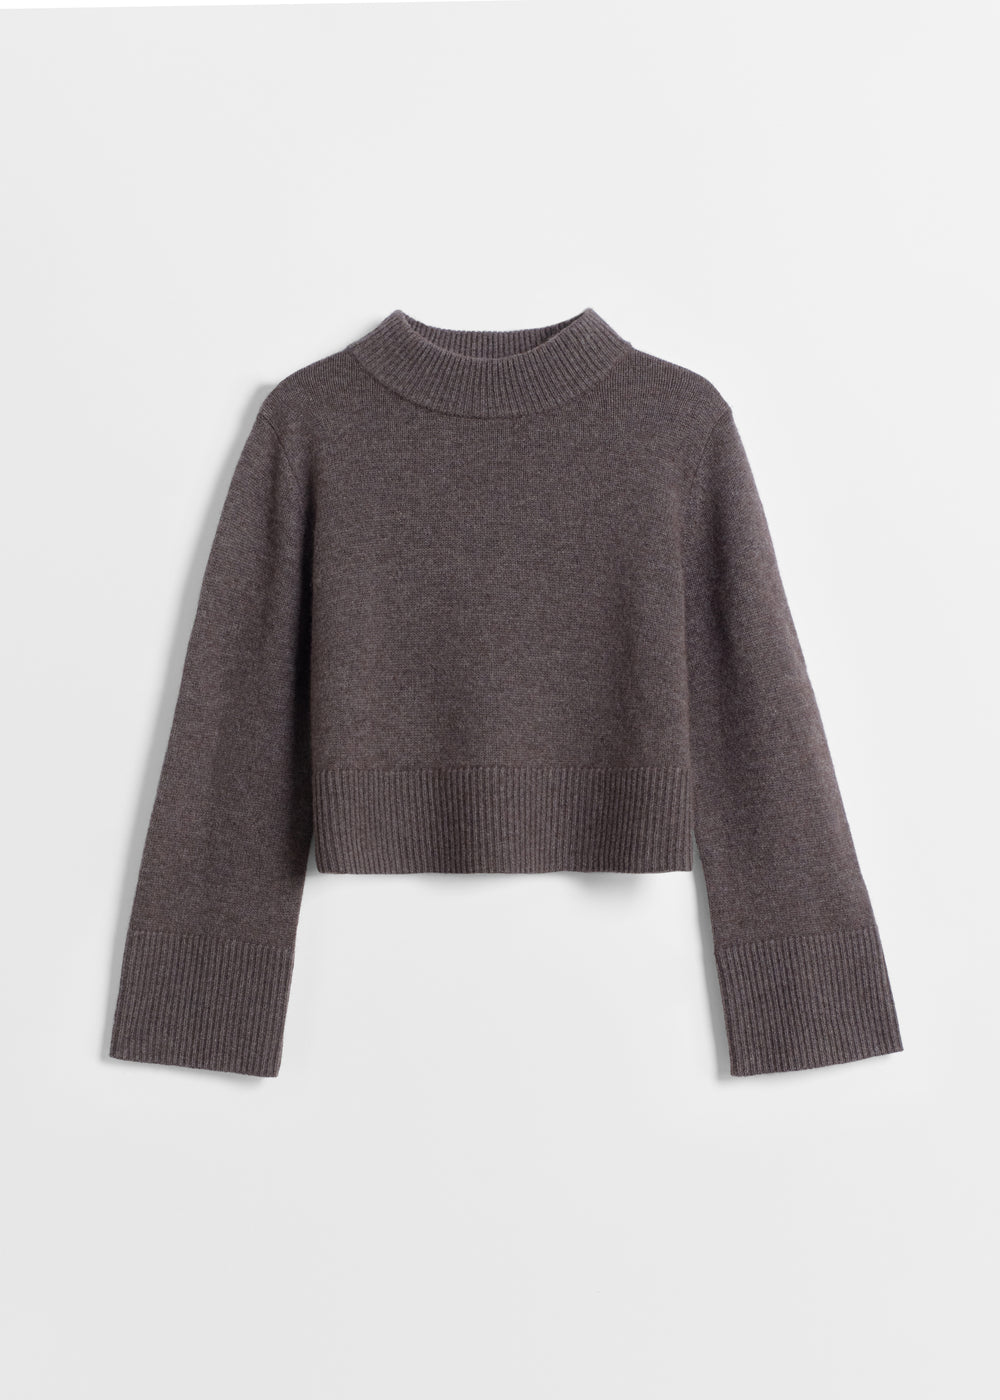 Boxy Crew Neck Sweater - Ivory in Brown by Co Collections